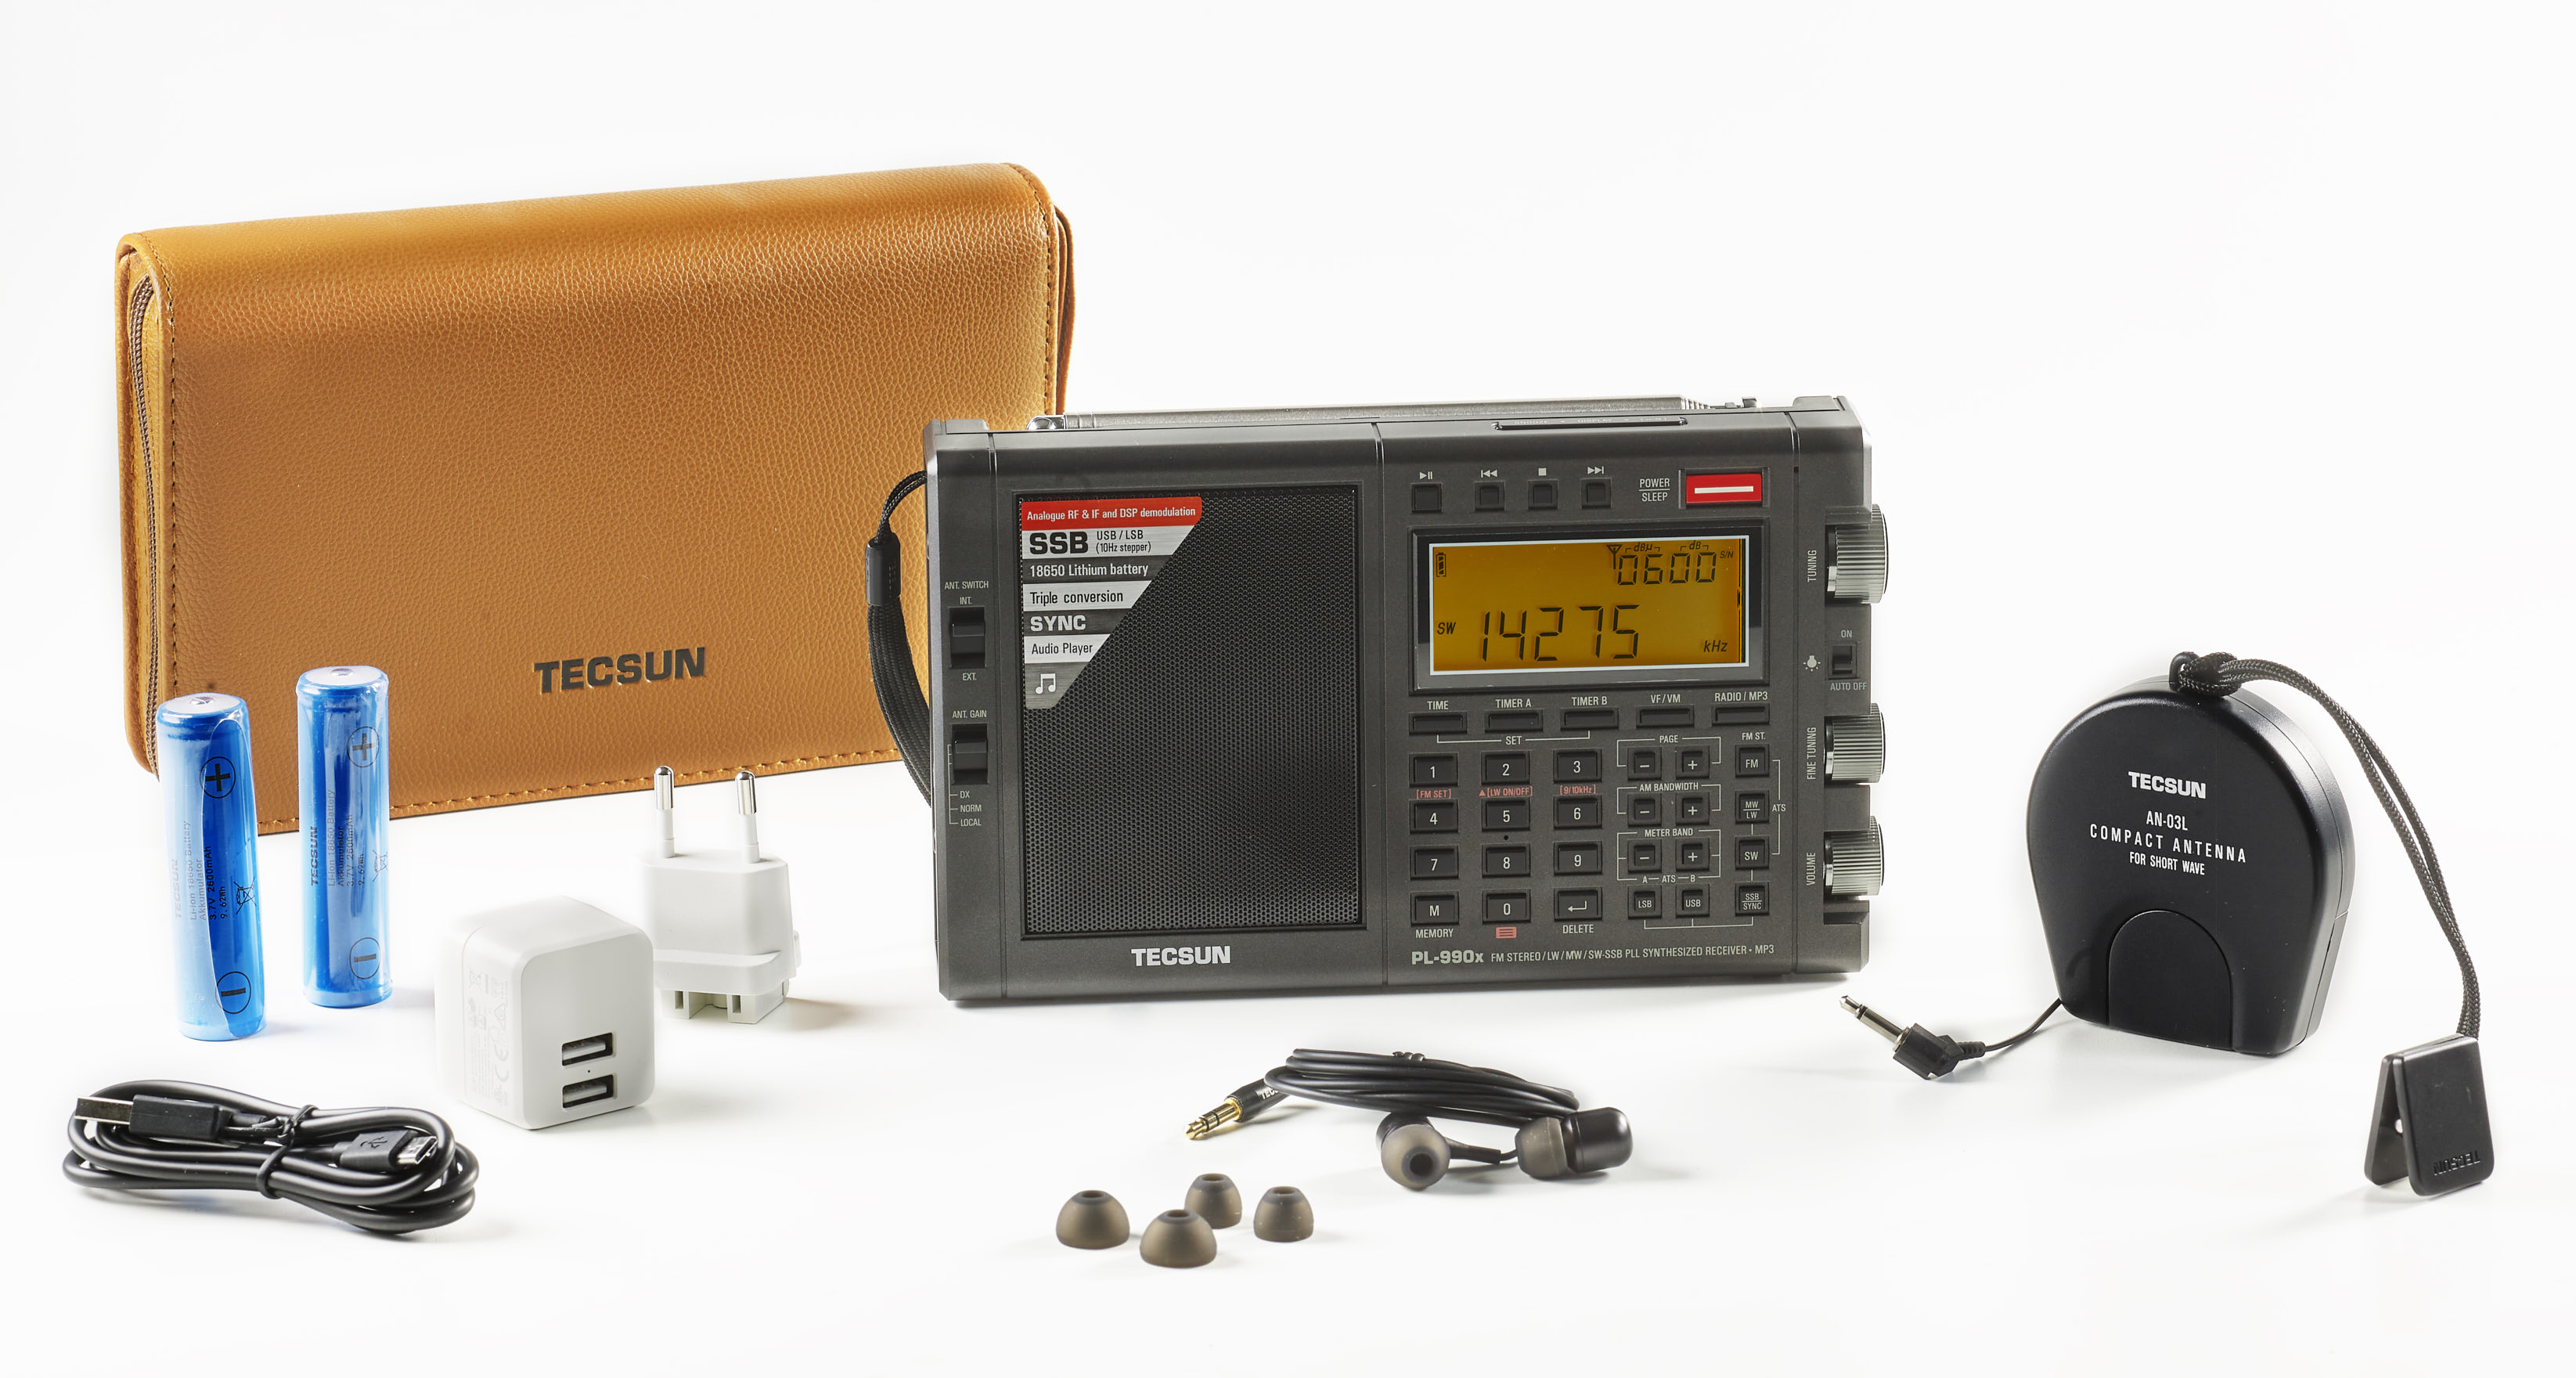 TECSUN PL-990x BLUETOOTH VERSION, AM FM SSB MAAILMANRADIO. UUTUUS!